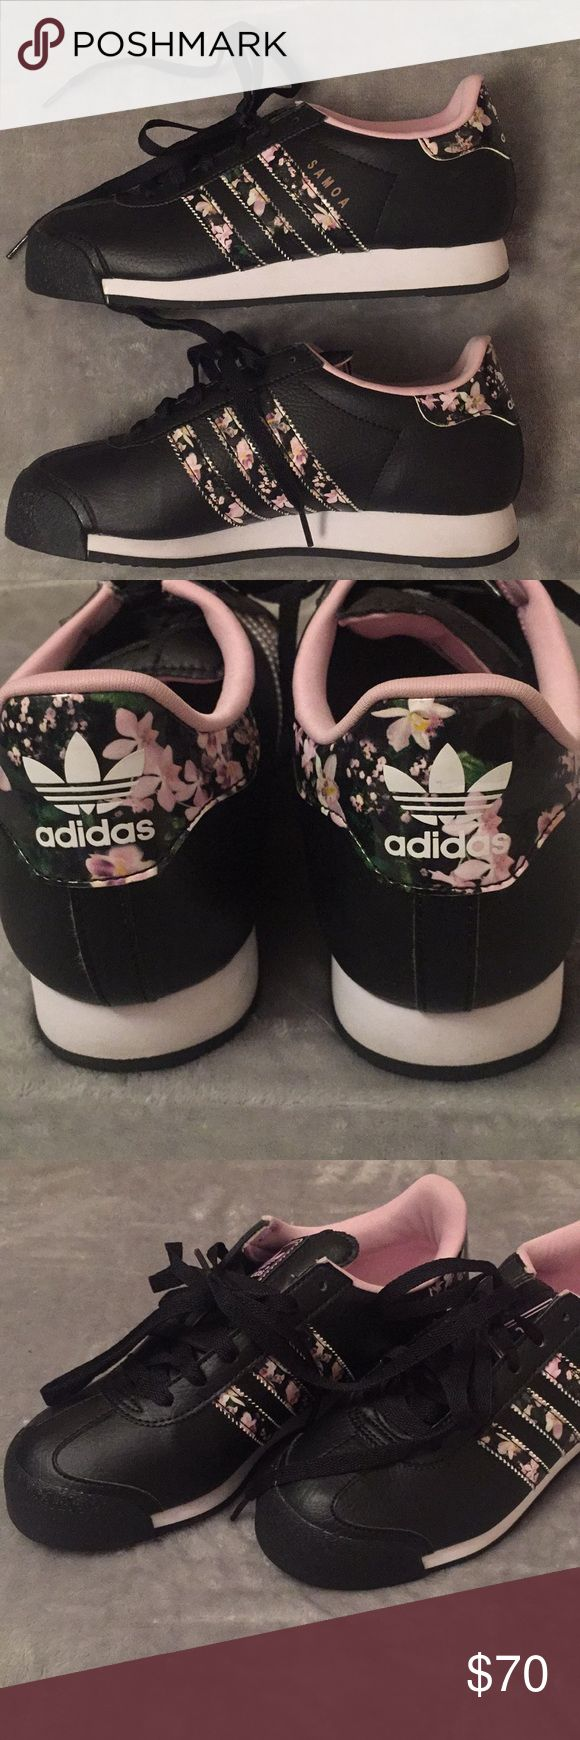 Authentic Adidas Samos W sneakers. Originals Authentic Adidas Samoa Womens sneakers. Brand new! adidas Shoes Sneakers